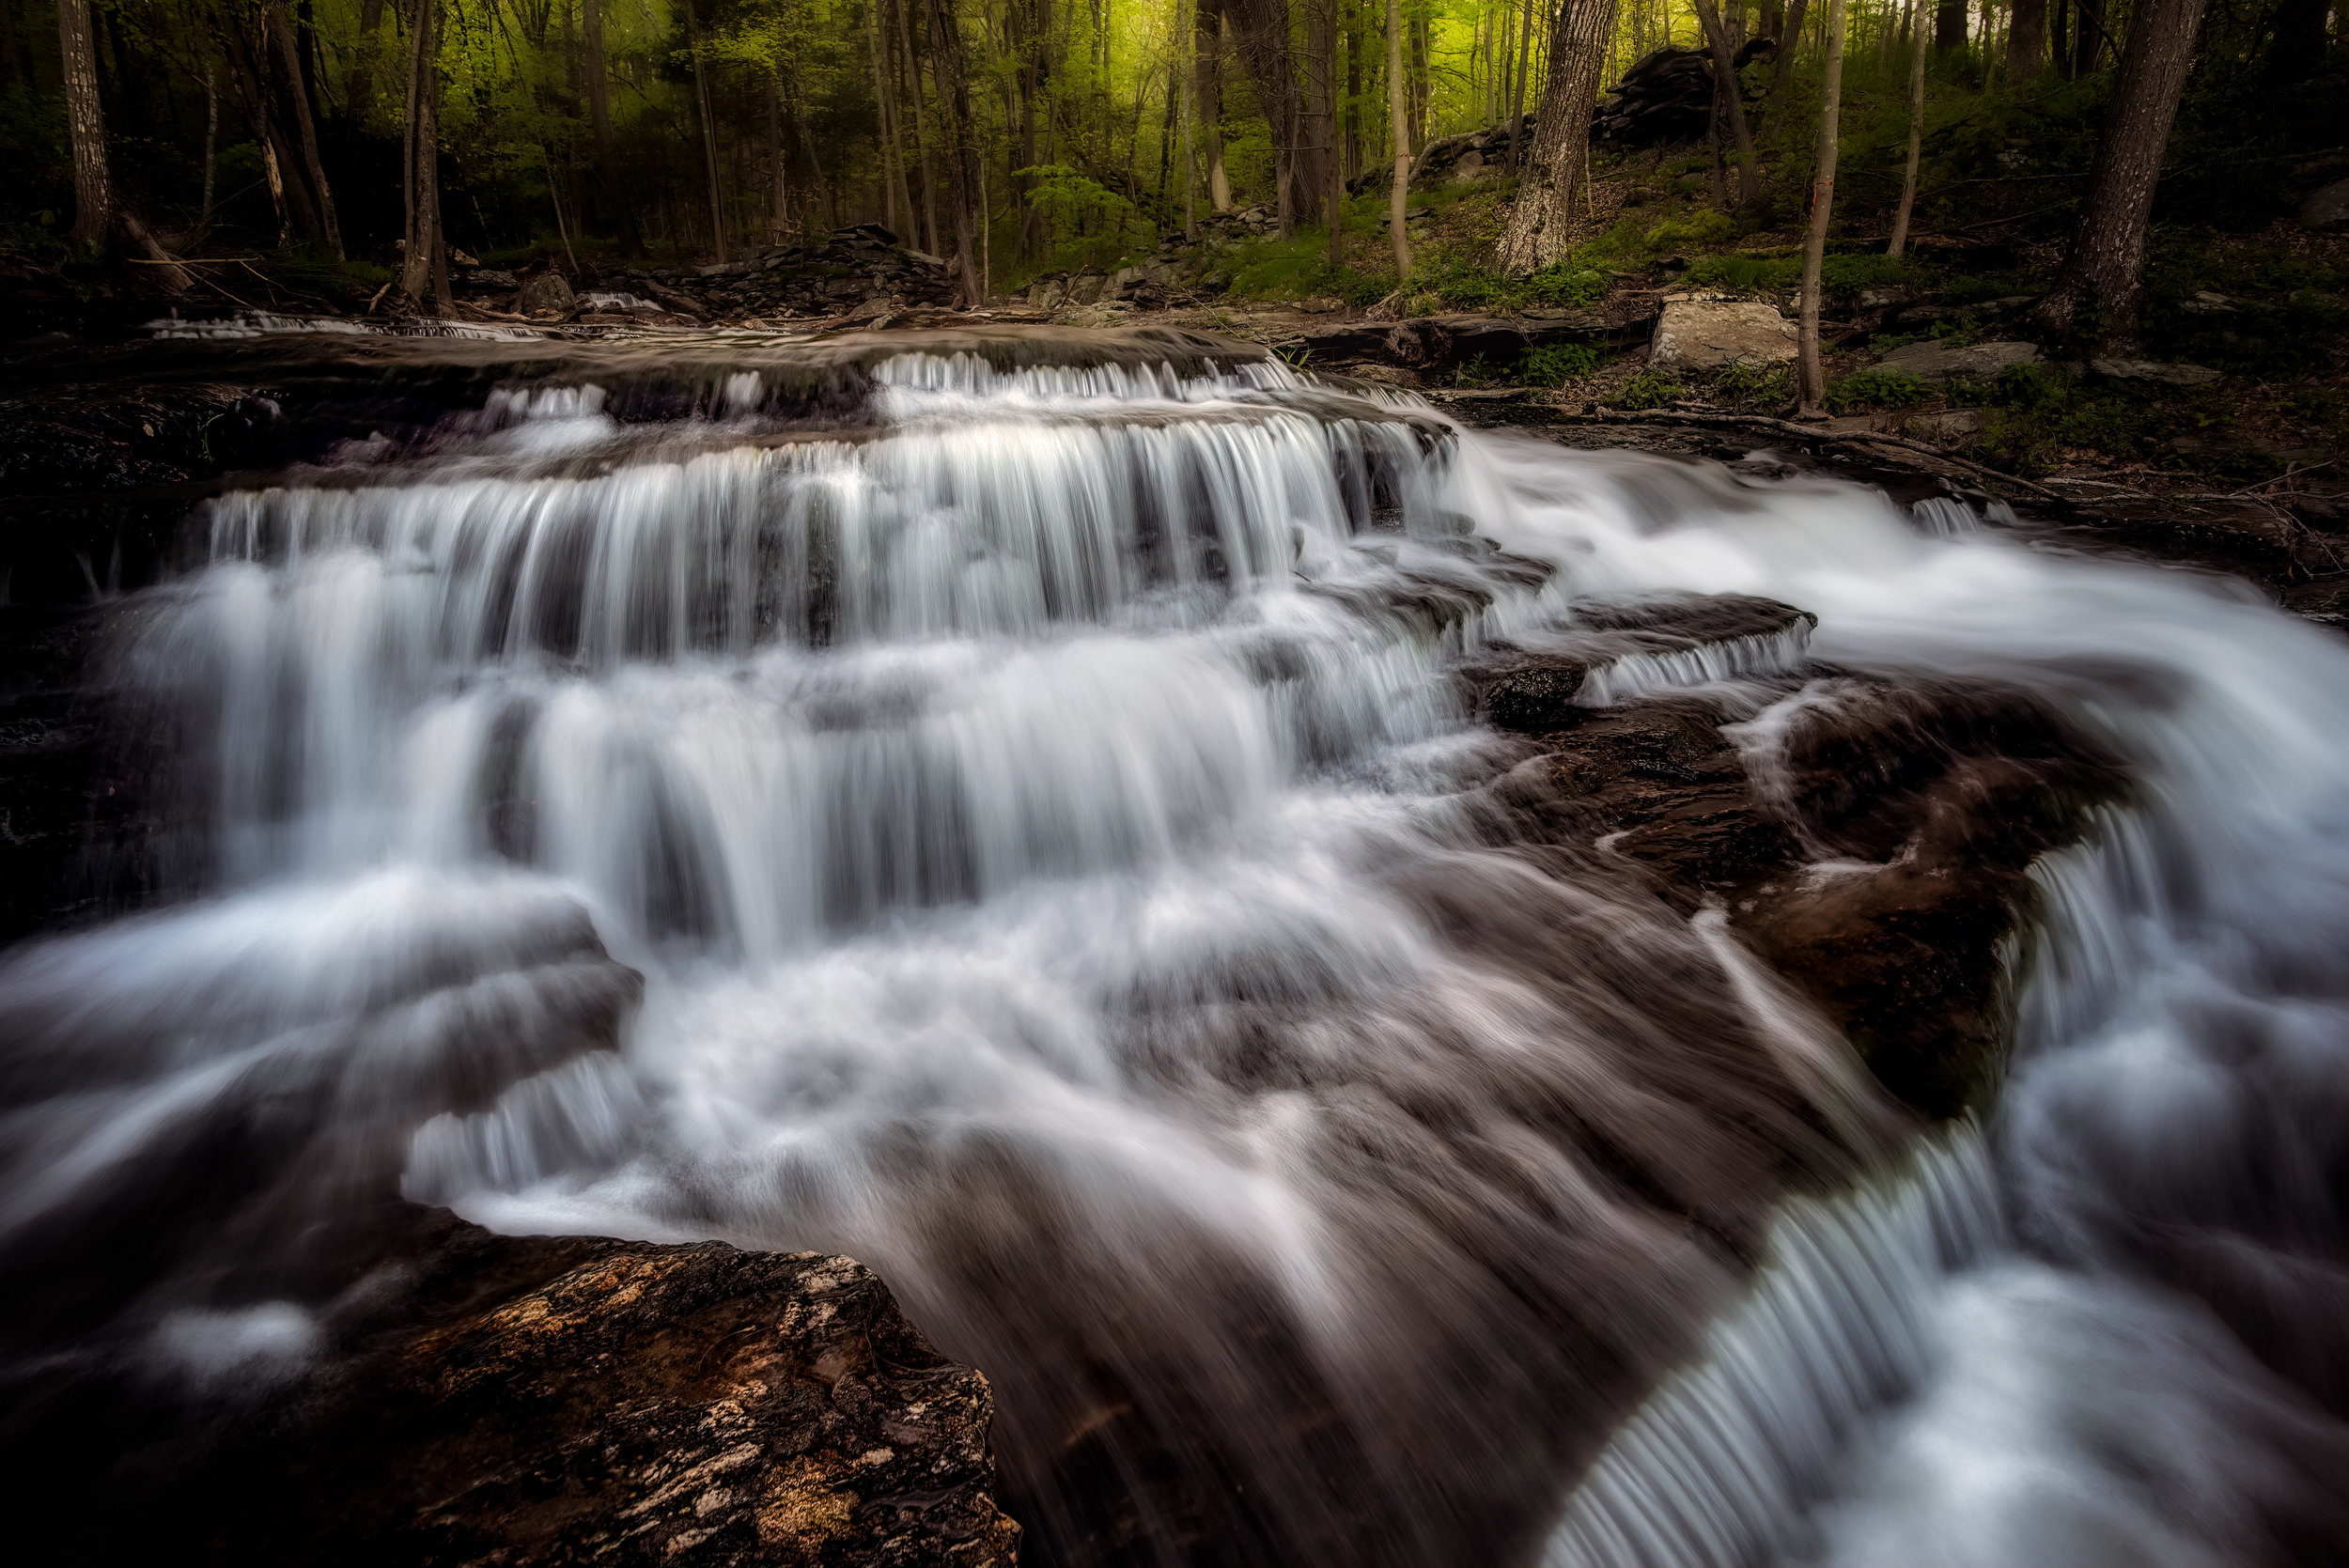 This is about midway up from the bottom of the cascade area facing into the woods away from the road. The 20 mm lens really helps to exaggerate these step cascades. An even wider lens would probably look even more dramatic.